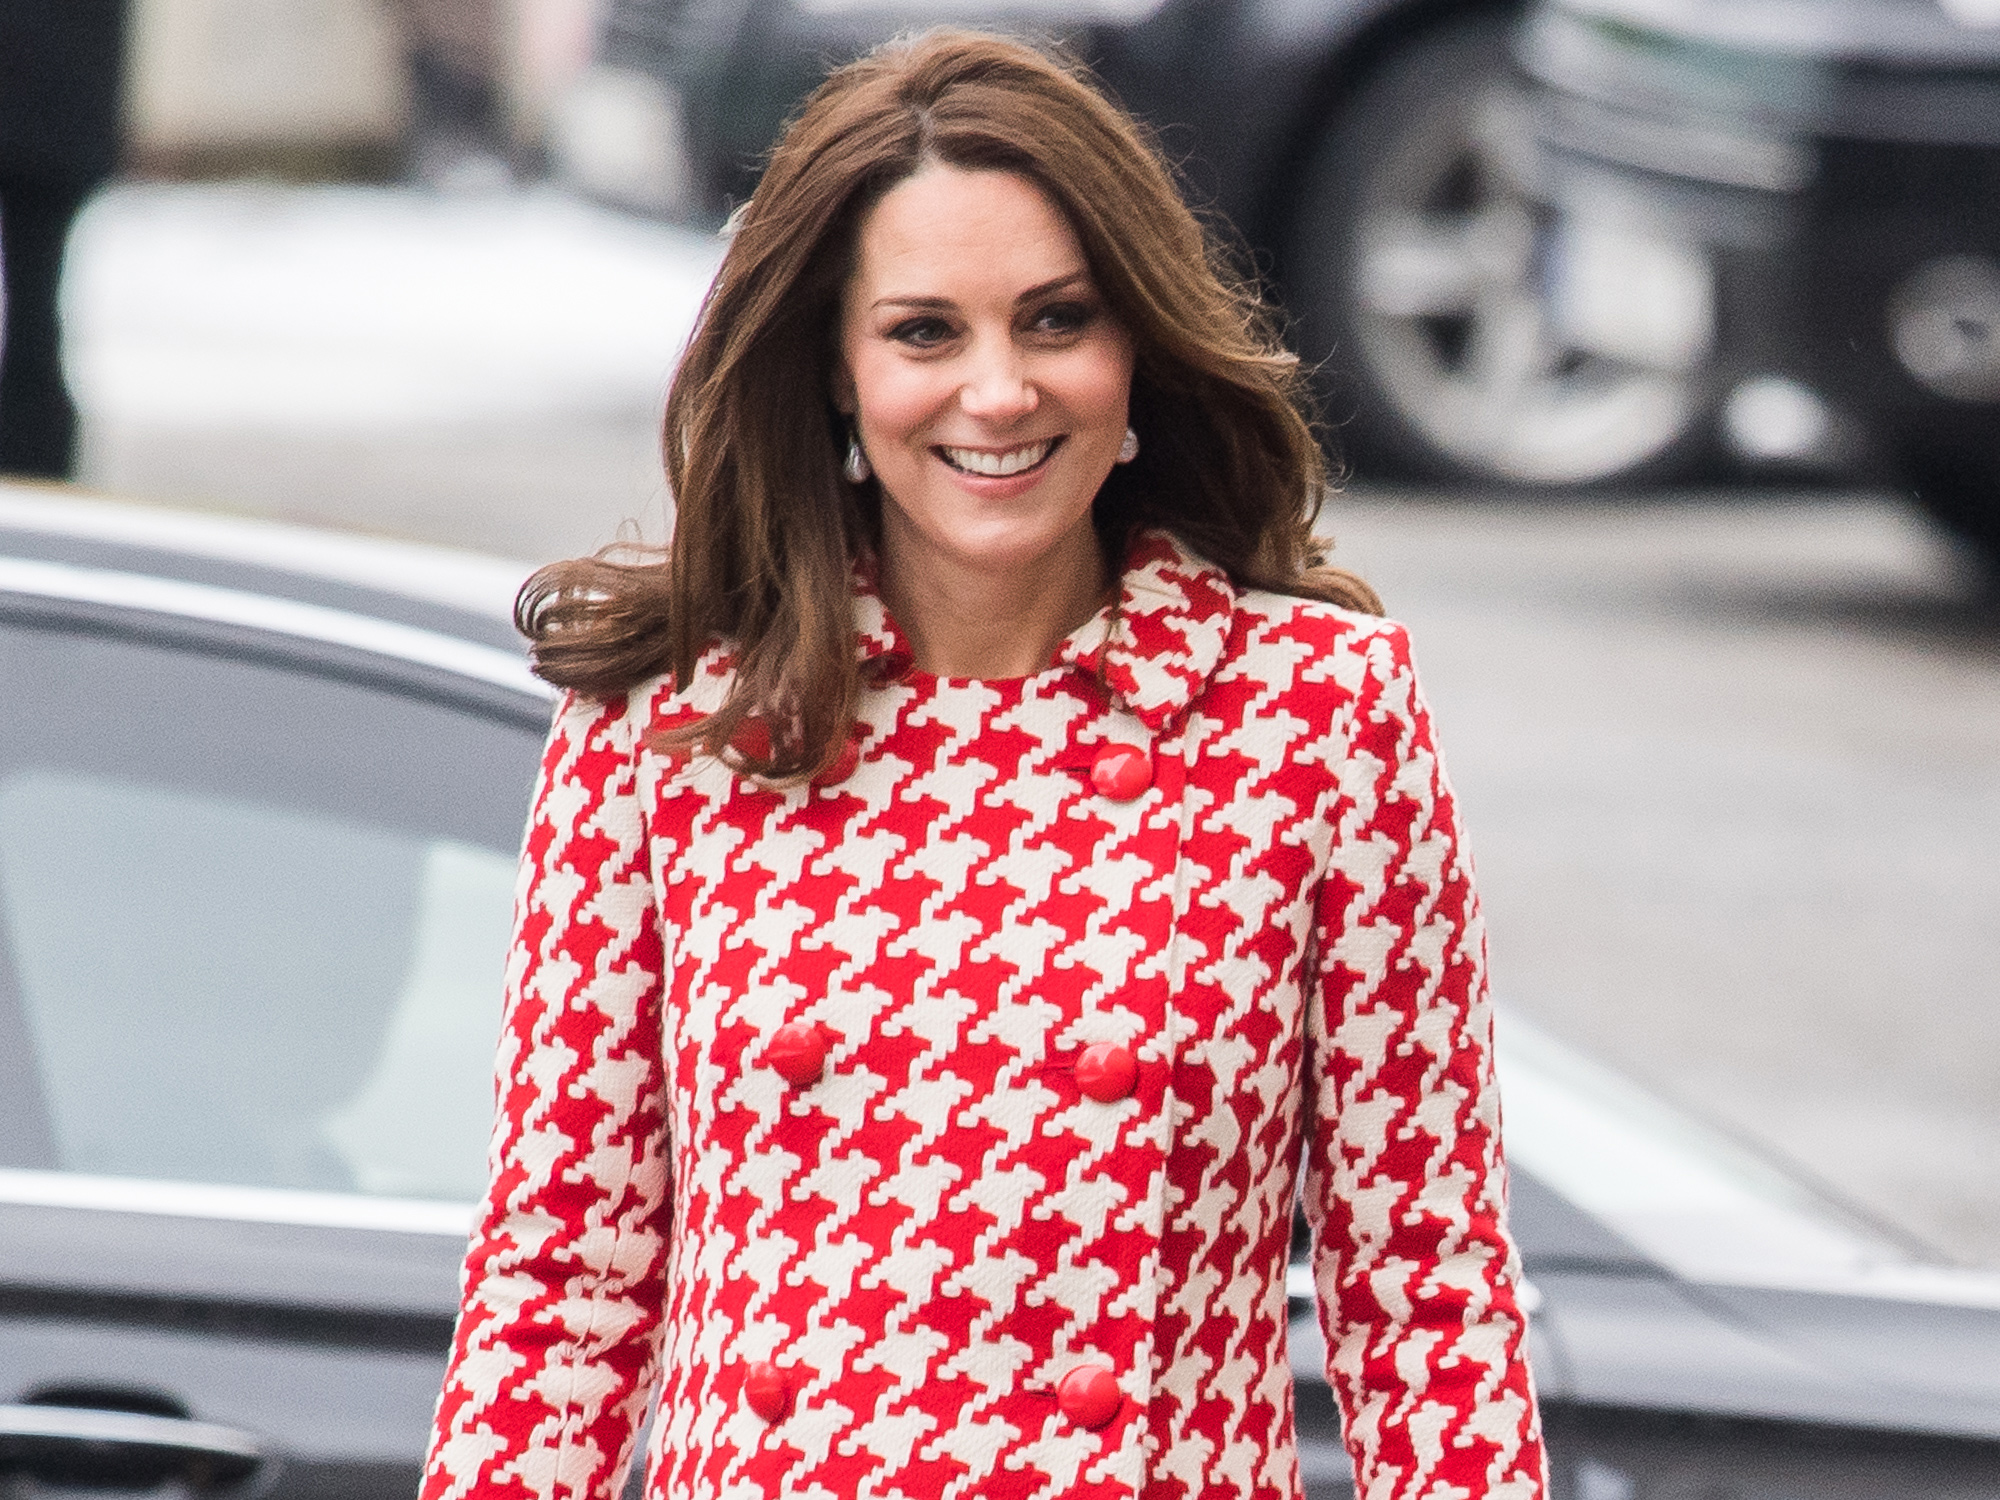 Kate Middleton defies black dress code at BAFTA, draws backlash on Twitter